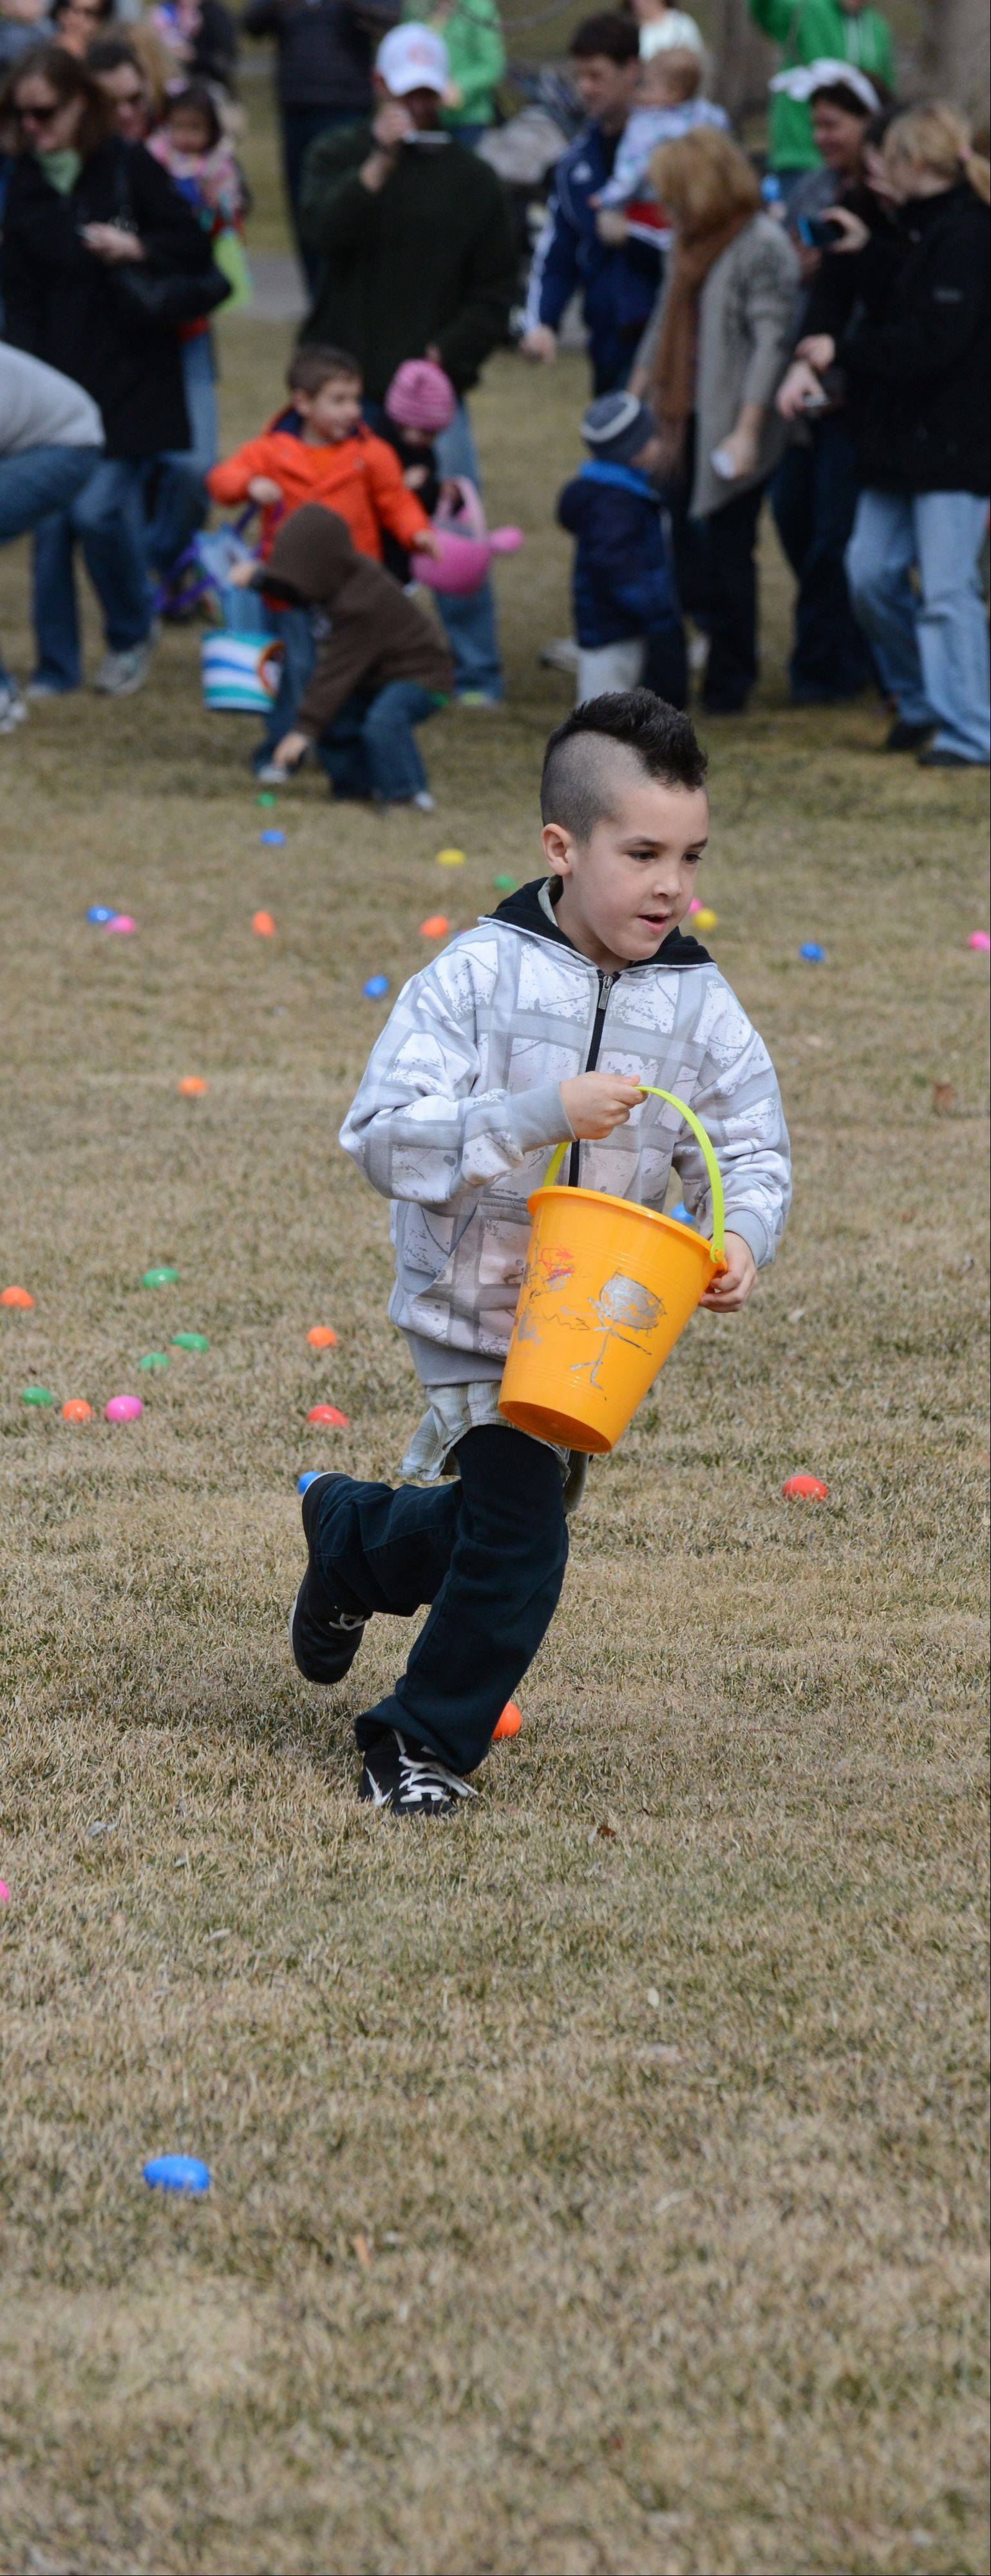 KJ Dawson, 8, of Wheaton hunted for colored eggs on the lawn of the Robert R. McCormick Museum at Cantigny Park in Wheaton Saturday. The Easter Bunny and a petting zoo were also there for the children to visit.